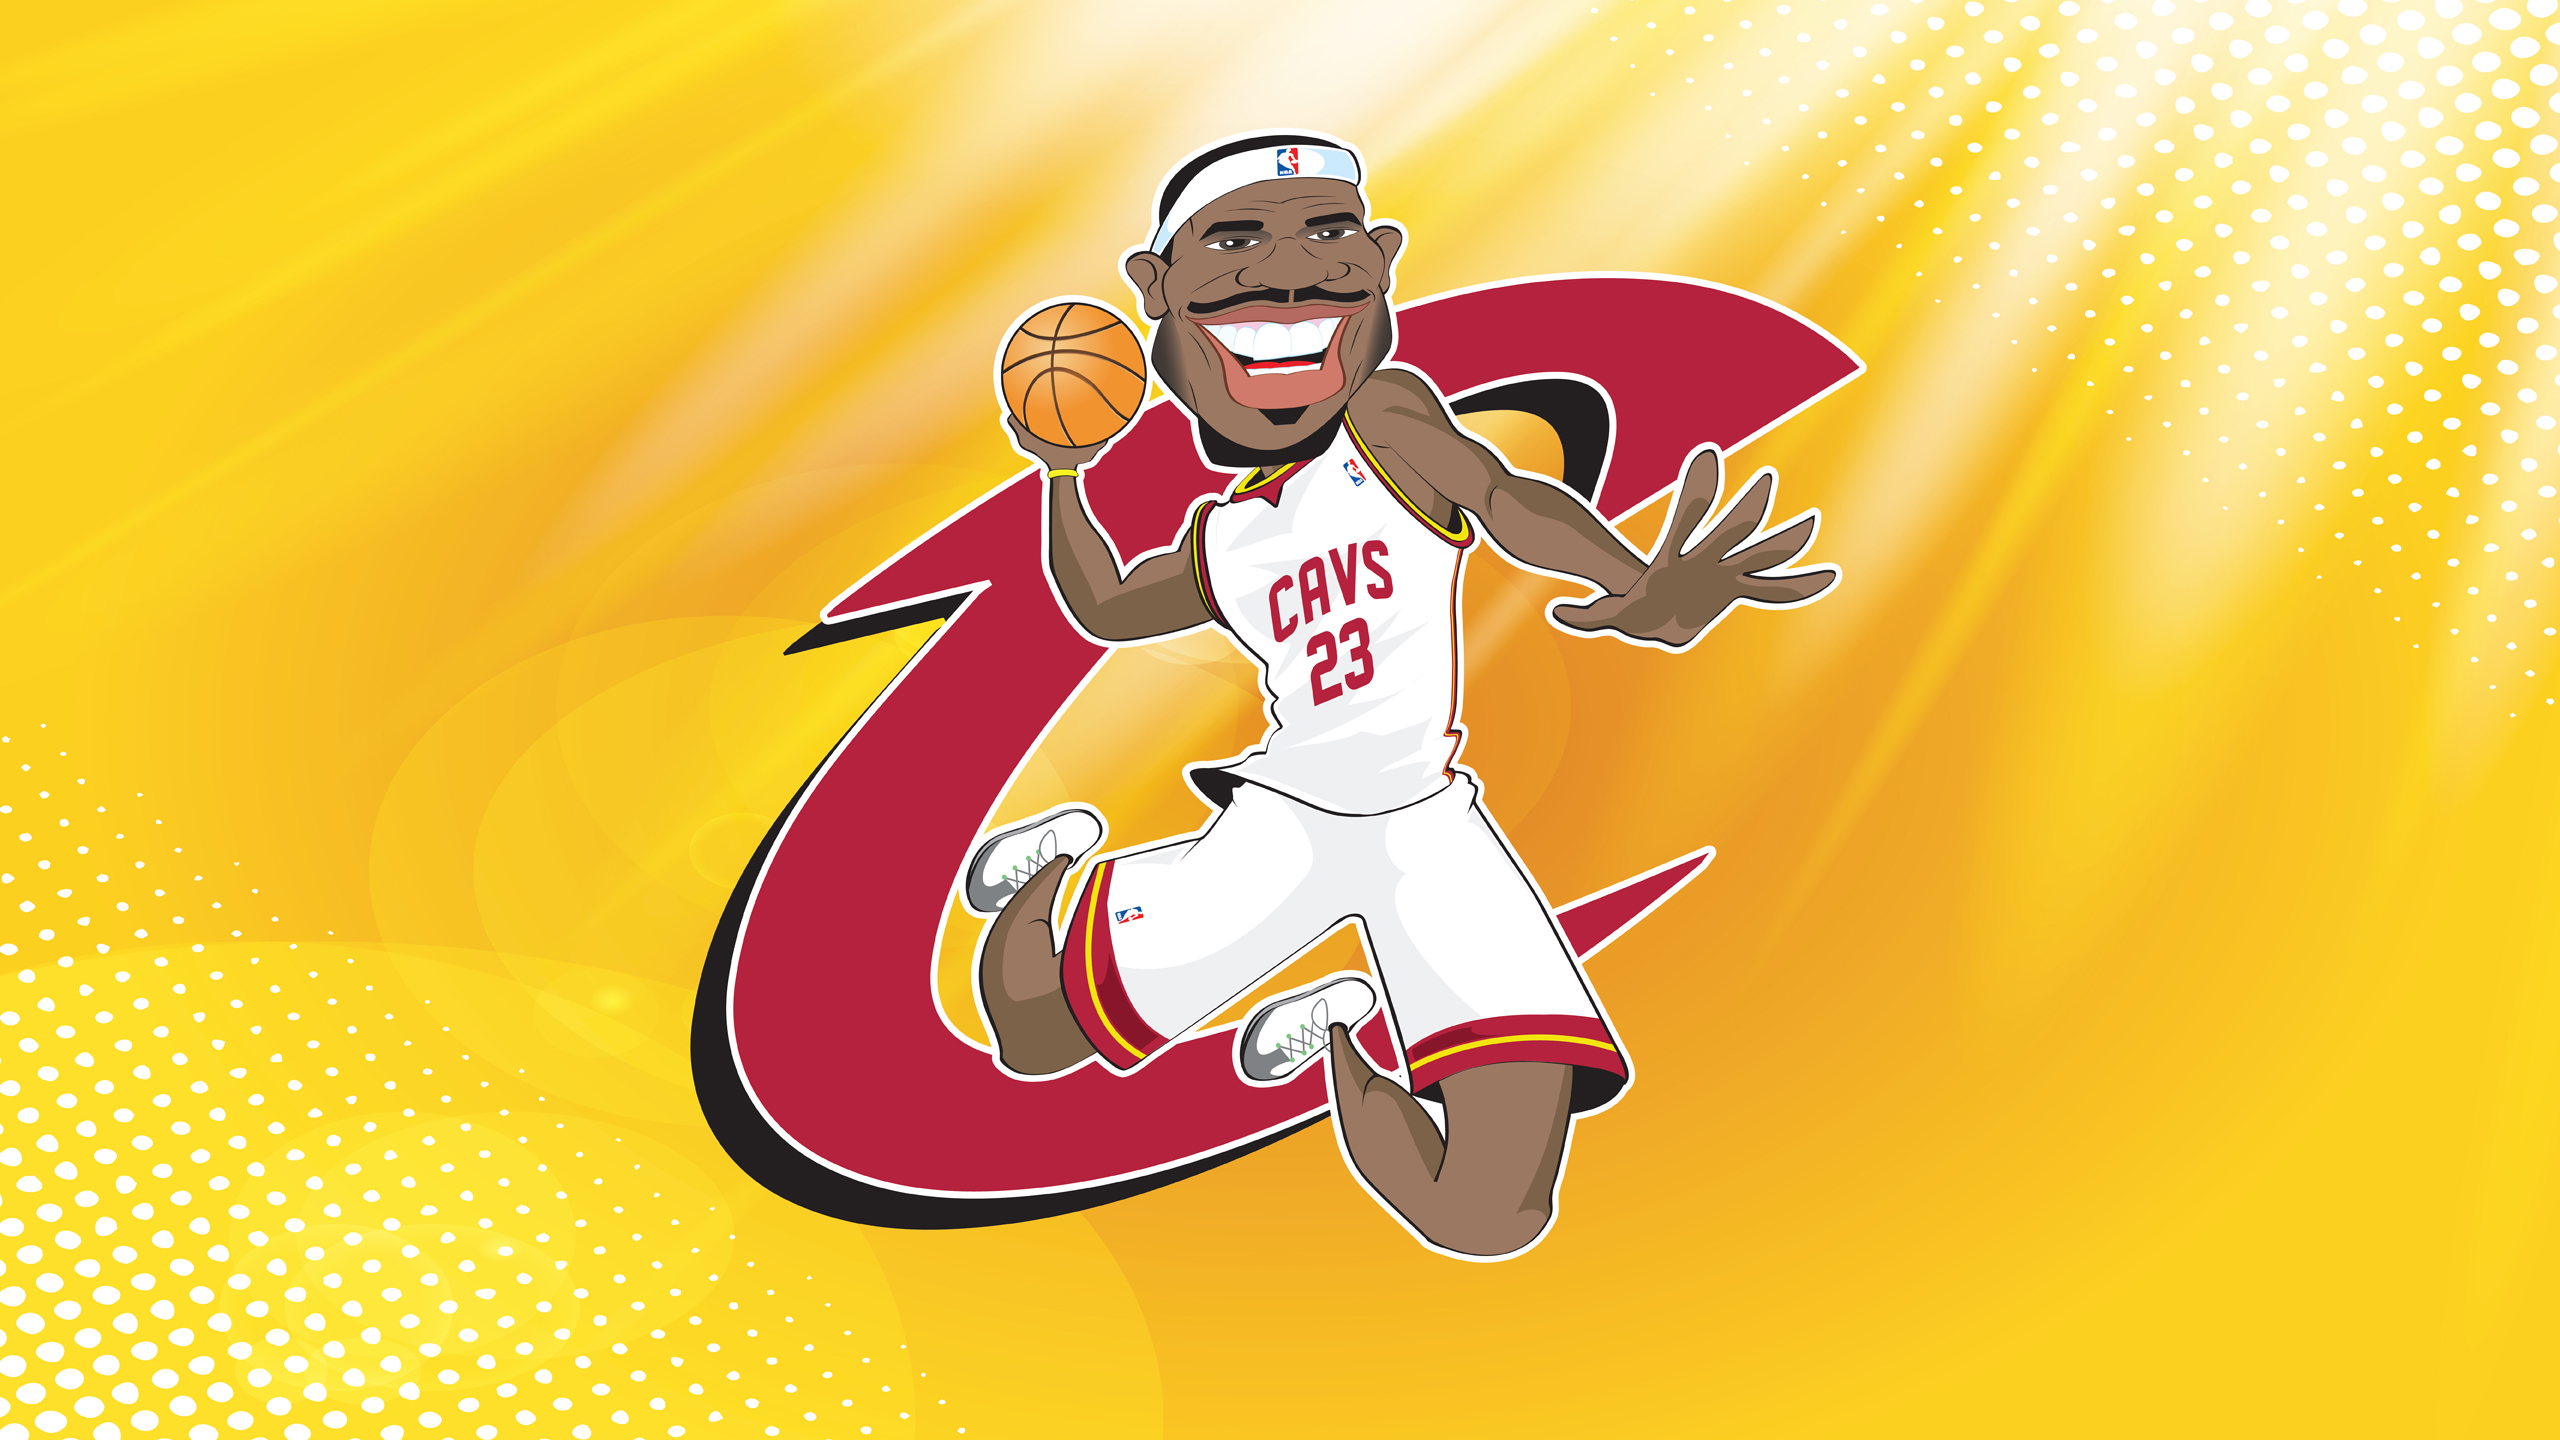 separation shoes 281a3 00498 lebron james wallpapers 2560x1440